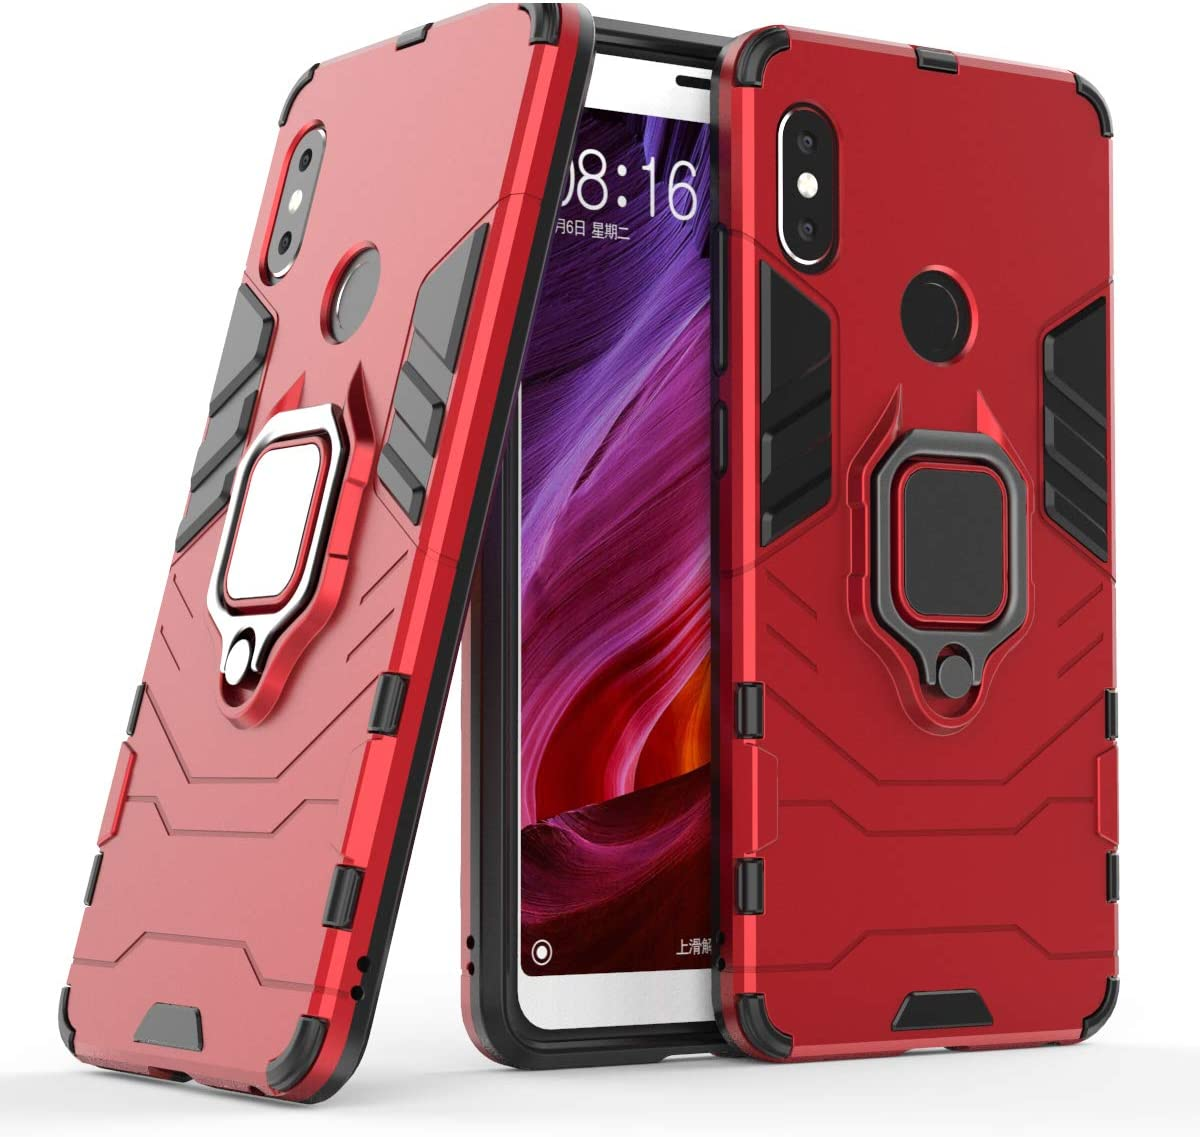 Cocomii Black Panther Ring Xiaomi Redmi Note 5/Note 5 Pro Case, Slim Thin Matte Vertical & Horizontal Kickstand Ring Grip Protection Bumper Cover Compatible with Xiaomi Redmi Note 5/Note 5 Pro (Red)